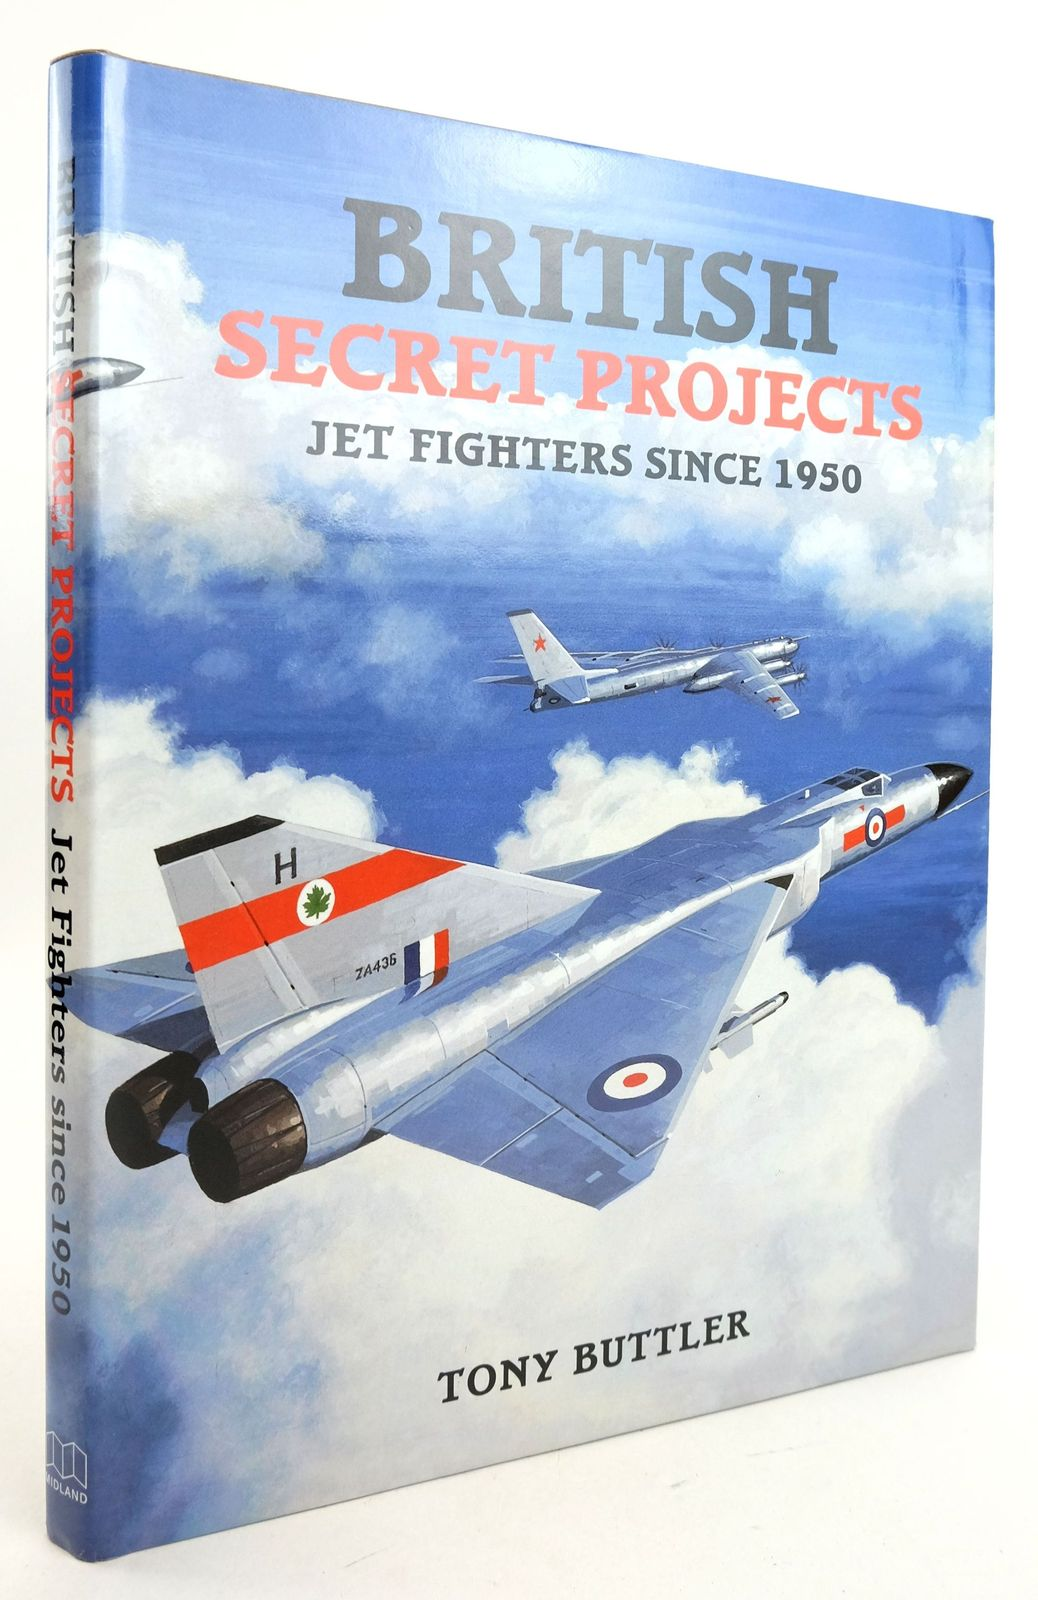 Photo of BRITISH SECRET PROJECTS: JET FIGHTERS SINCE 1950 written by Buttler, Tony published by Midland Publishing (STOCK CODE: 1819836)  for sale by Stella & Rose's Books